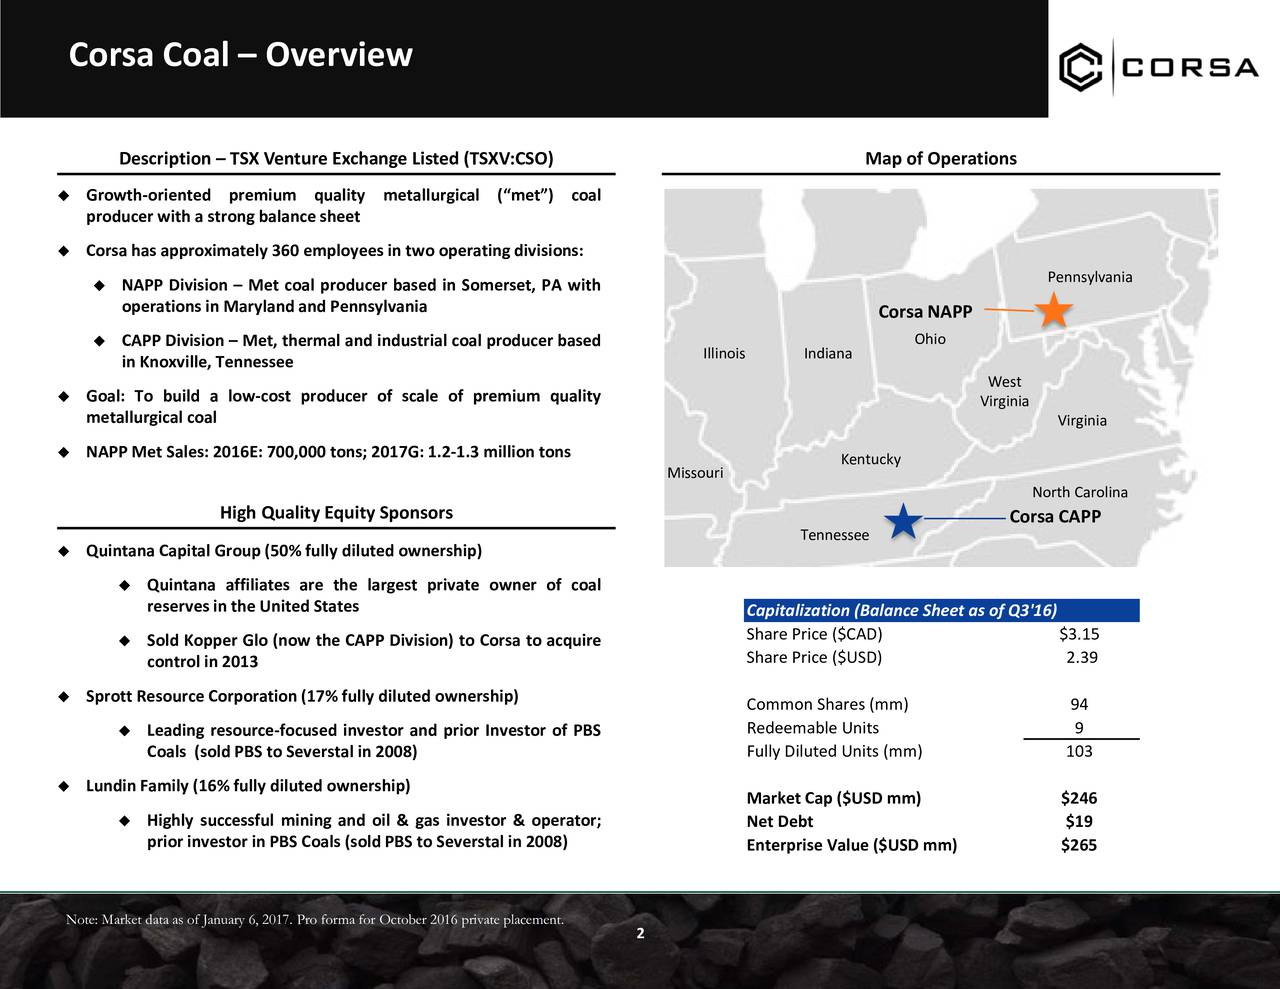 Description  TSX Venture Exchange Listed (TSXV:CSO) Map of Operations Growth-oriented premium quality metallurgical (met) coal producer with a strong balance sheet Corsa has approximately 360 employees in two operating divisions: NAPP Division  Met coal producer based in Somerset, PA with Pennsylvania operations in Maryland and Pennsylvania Corsa NAPP CAPP Division  Met, thermal and industrial coal producer based Illinois Indiana Ohio in Knoxville, Tennessee West Goal: To build a low-cost producer of scale of premium quality Virginia metallurgical coal Virginia NAPP Met Sales: 2016E: 700,000 tons; 2017G: 1.2-1.3 million tons Missouri Kentucky North Carolina High Quality Equity Sponsors Corsa CAPP Tennessee Quintana Capital Group (50% fully diluted ownership) Quintana affiliates are the largest private owner of coal reserves in the United States Capitalization (Balance Sheet as of Q3'16) Share Price ($CAD) $3.15 Sold Kopper Glo (now the CAPP Division) to Corsa to acquire control in 2013 Share Price ($USD) 2.39 Sprott Resource Corporation (17% fully diluted ownership) Common Shares (mm) 94 Leading resource-focused investor and prior Investor of PBS Redeemable Units 9 Coals (sold PBS to Severstal in 2008) Fully Diluted Units (mm) 103 Lundin Family (16% fully diluted ownership) Market Cap ($USD mm) $246 Highly successful mining and oil & gas investor & operator; Net Debt $19 prior investor in PBS Coals (sold PBS to Severstal in 2008) Enterprise Value ($USD mm) $265 Note: Market data as of January 6, 2017. Pro forma for October 2016 private placement. 2